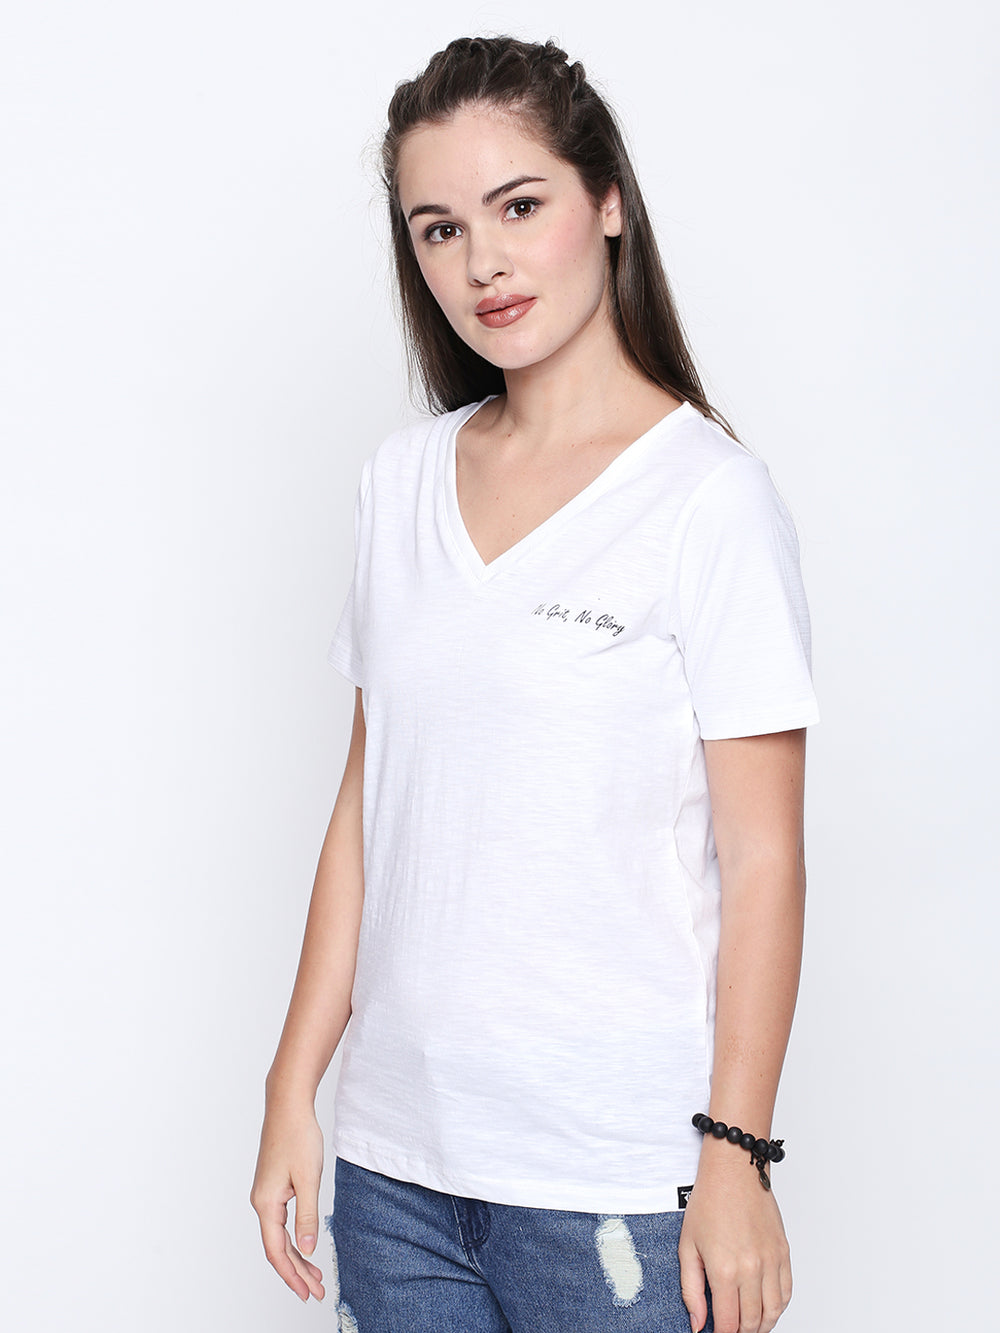 White V-Neck Refuse To Be Ordinary Print T-shirt for Women's